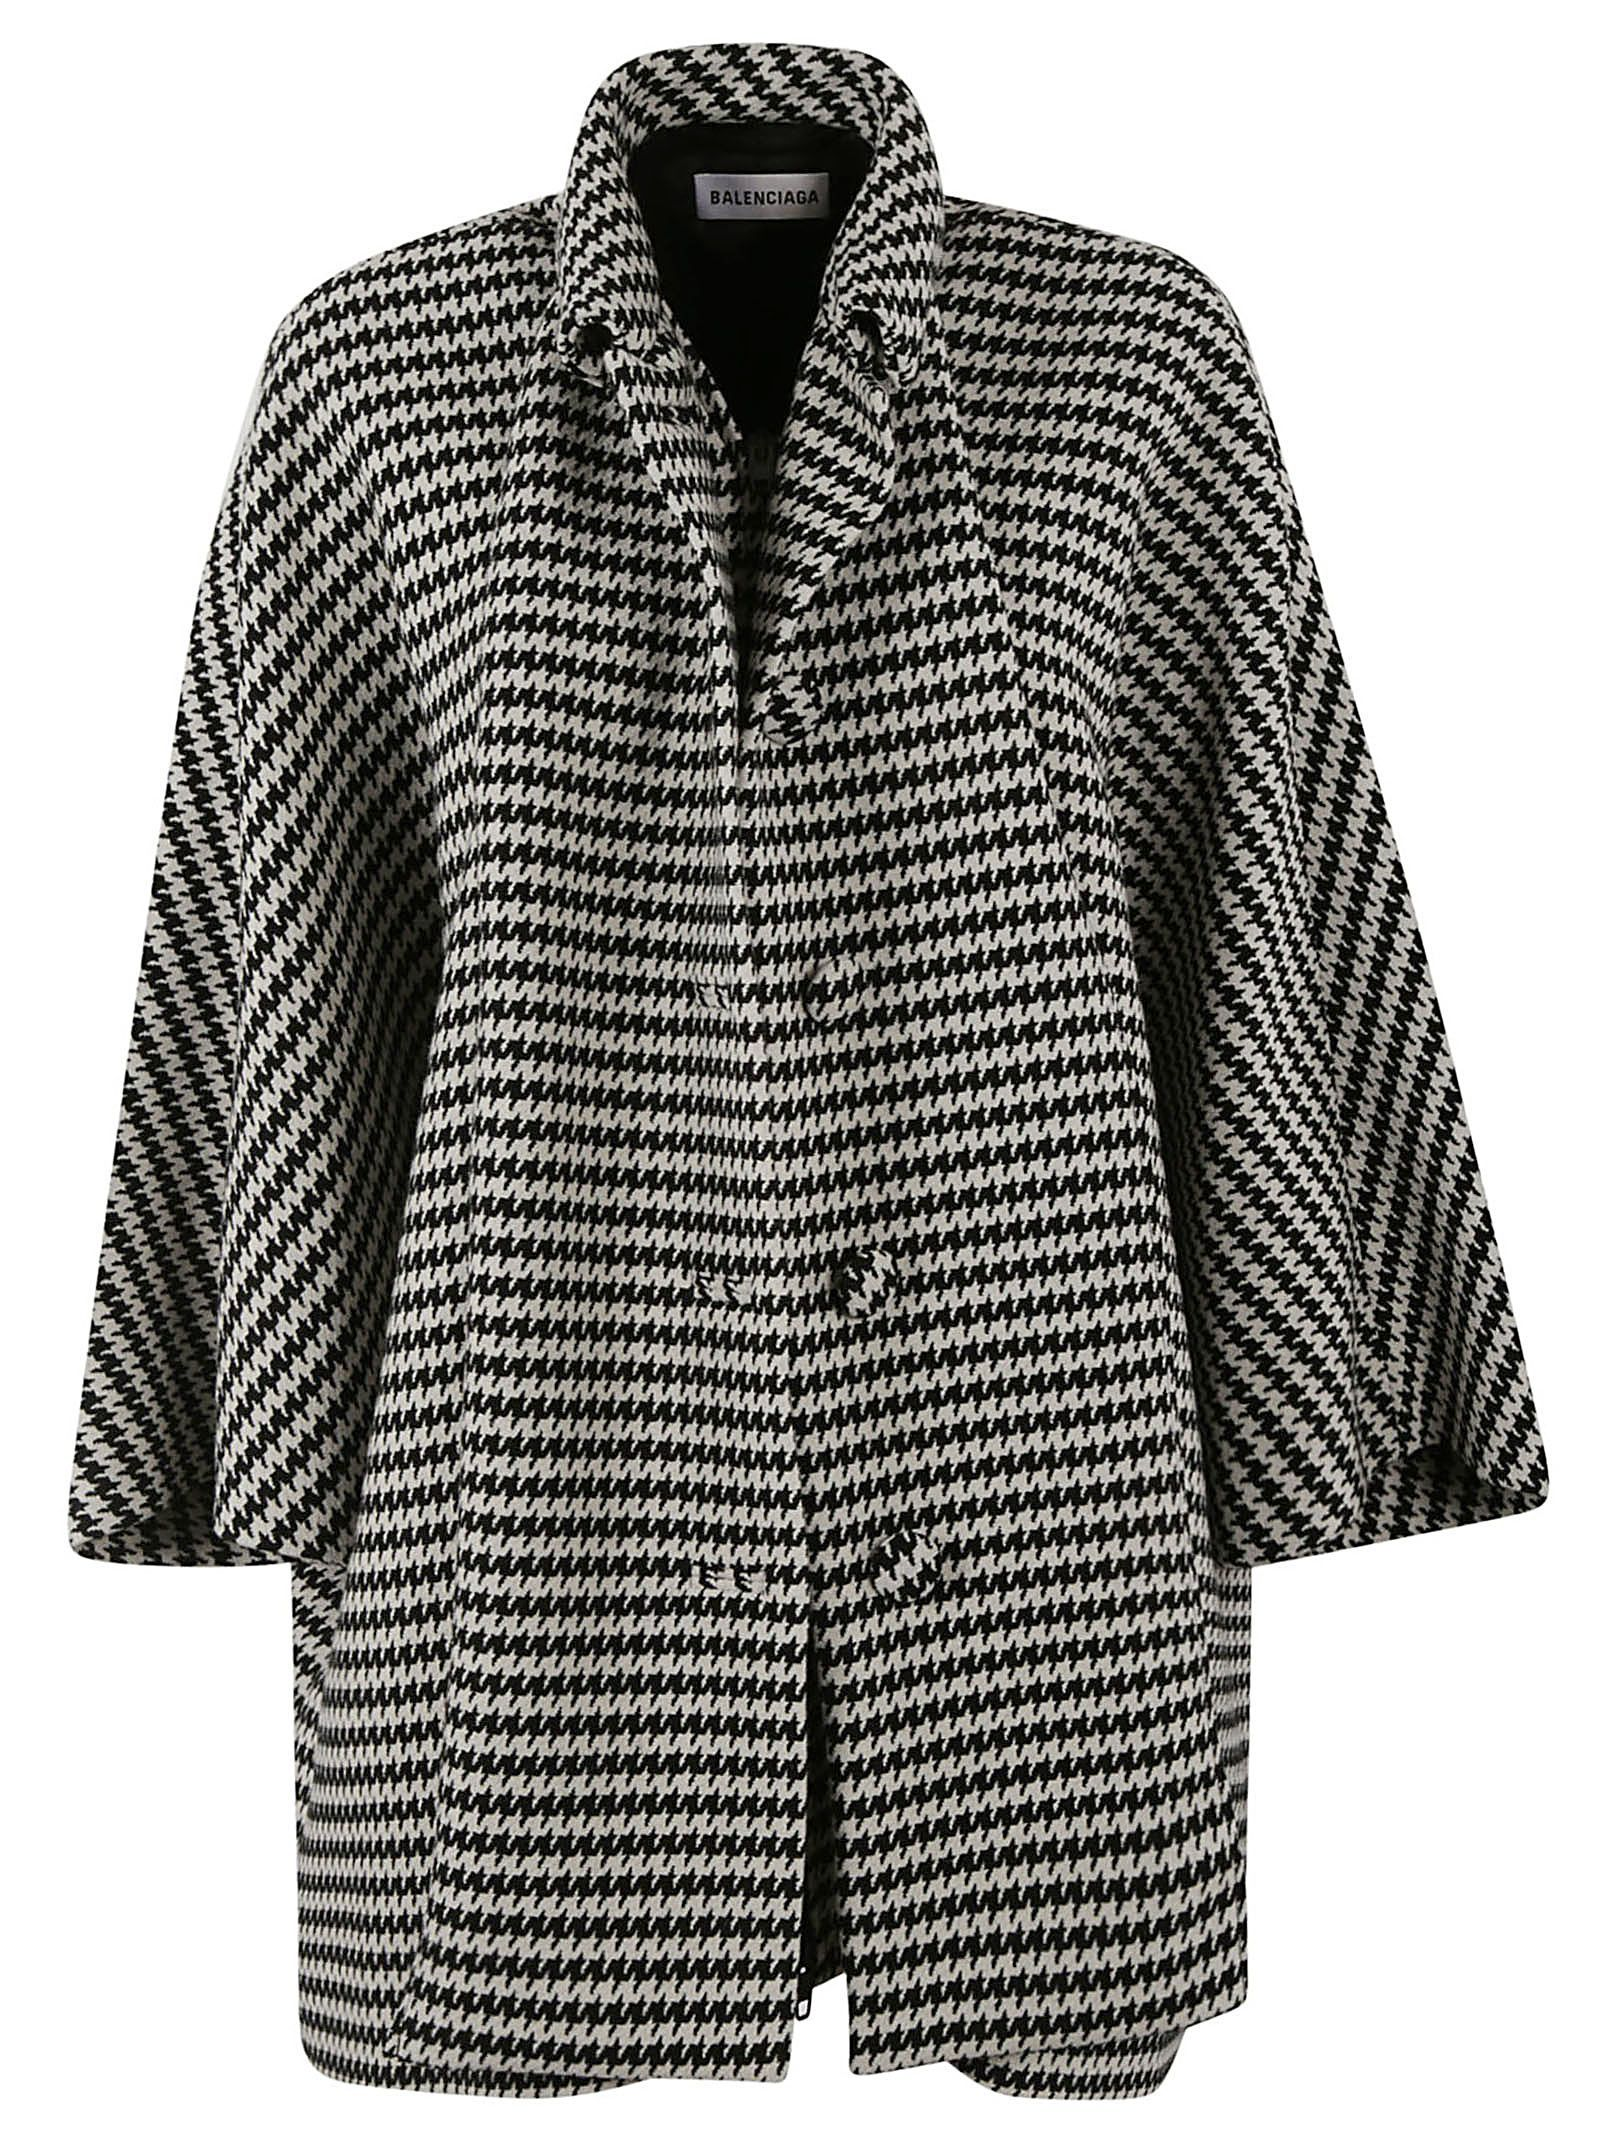 587ab1429137 BALENCIAGA HOUNDSTOOTH COAT.  balenciaga  cloth